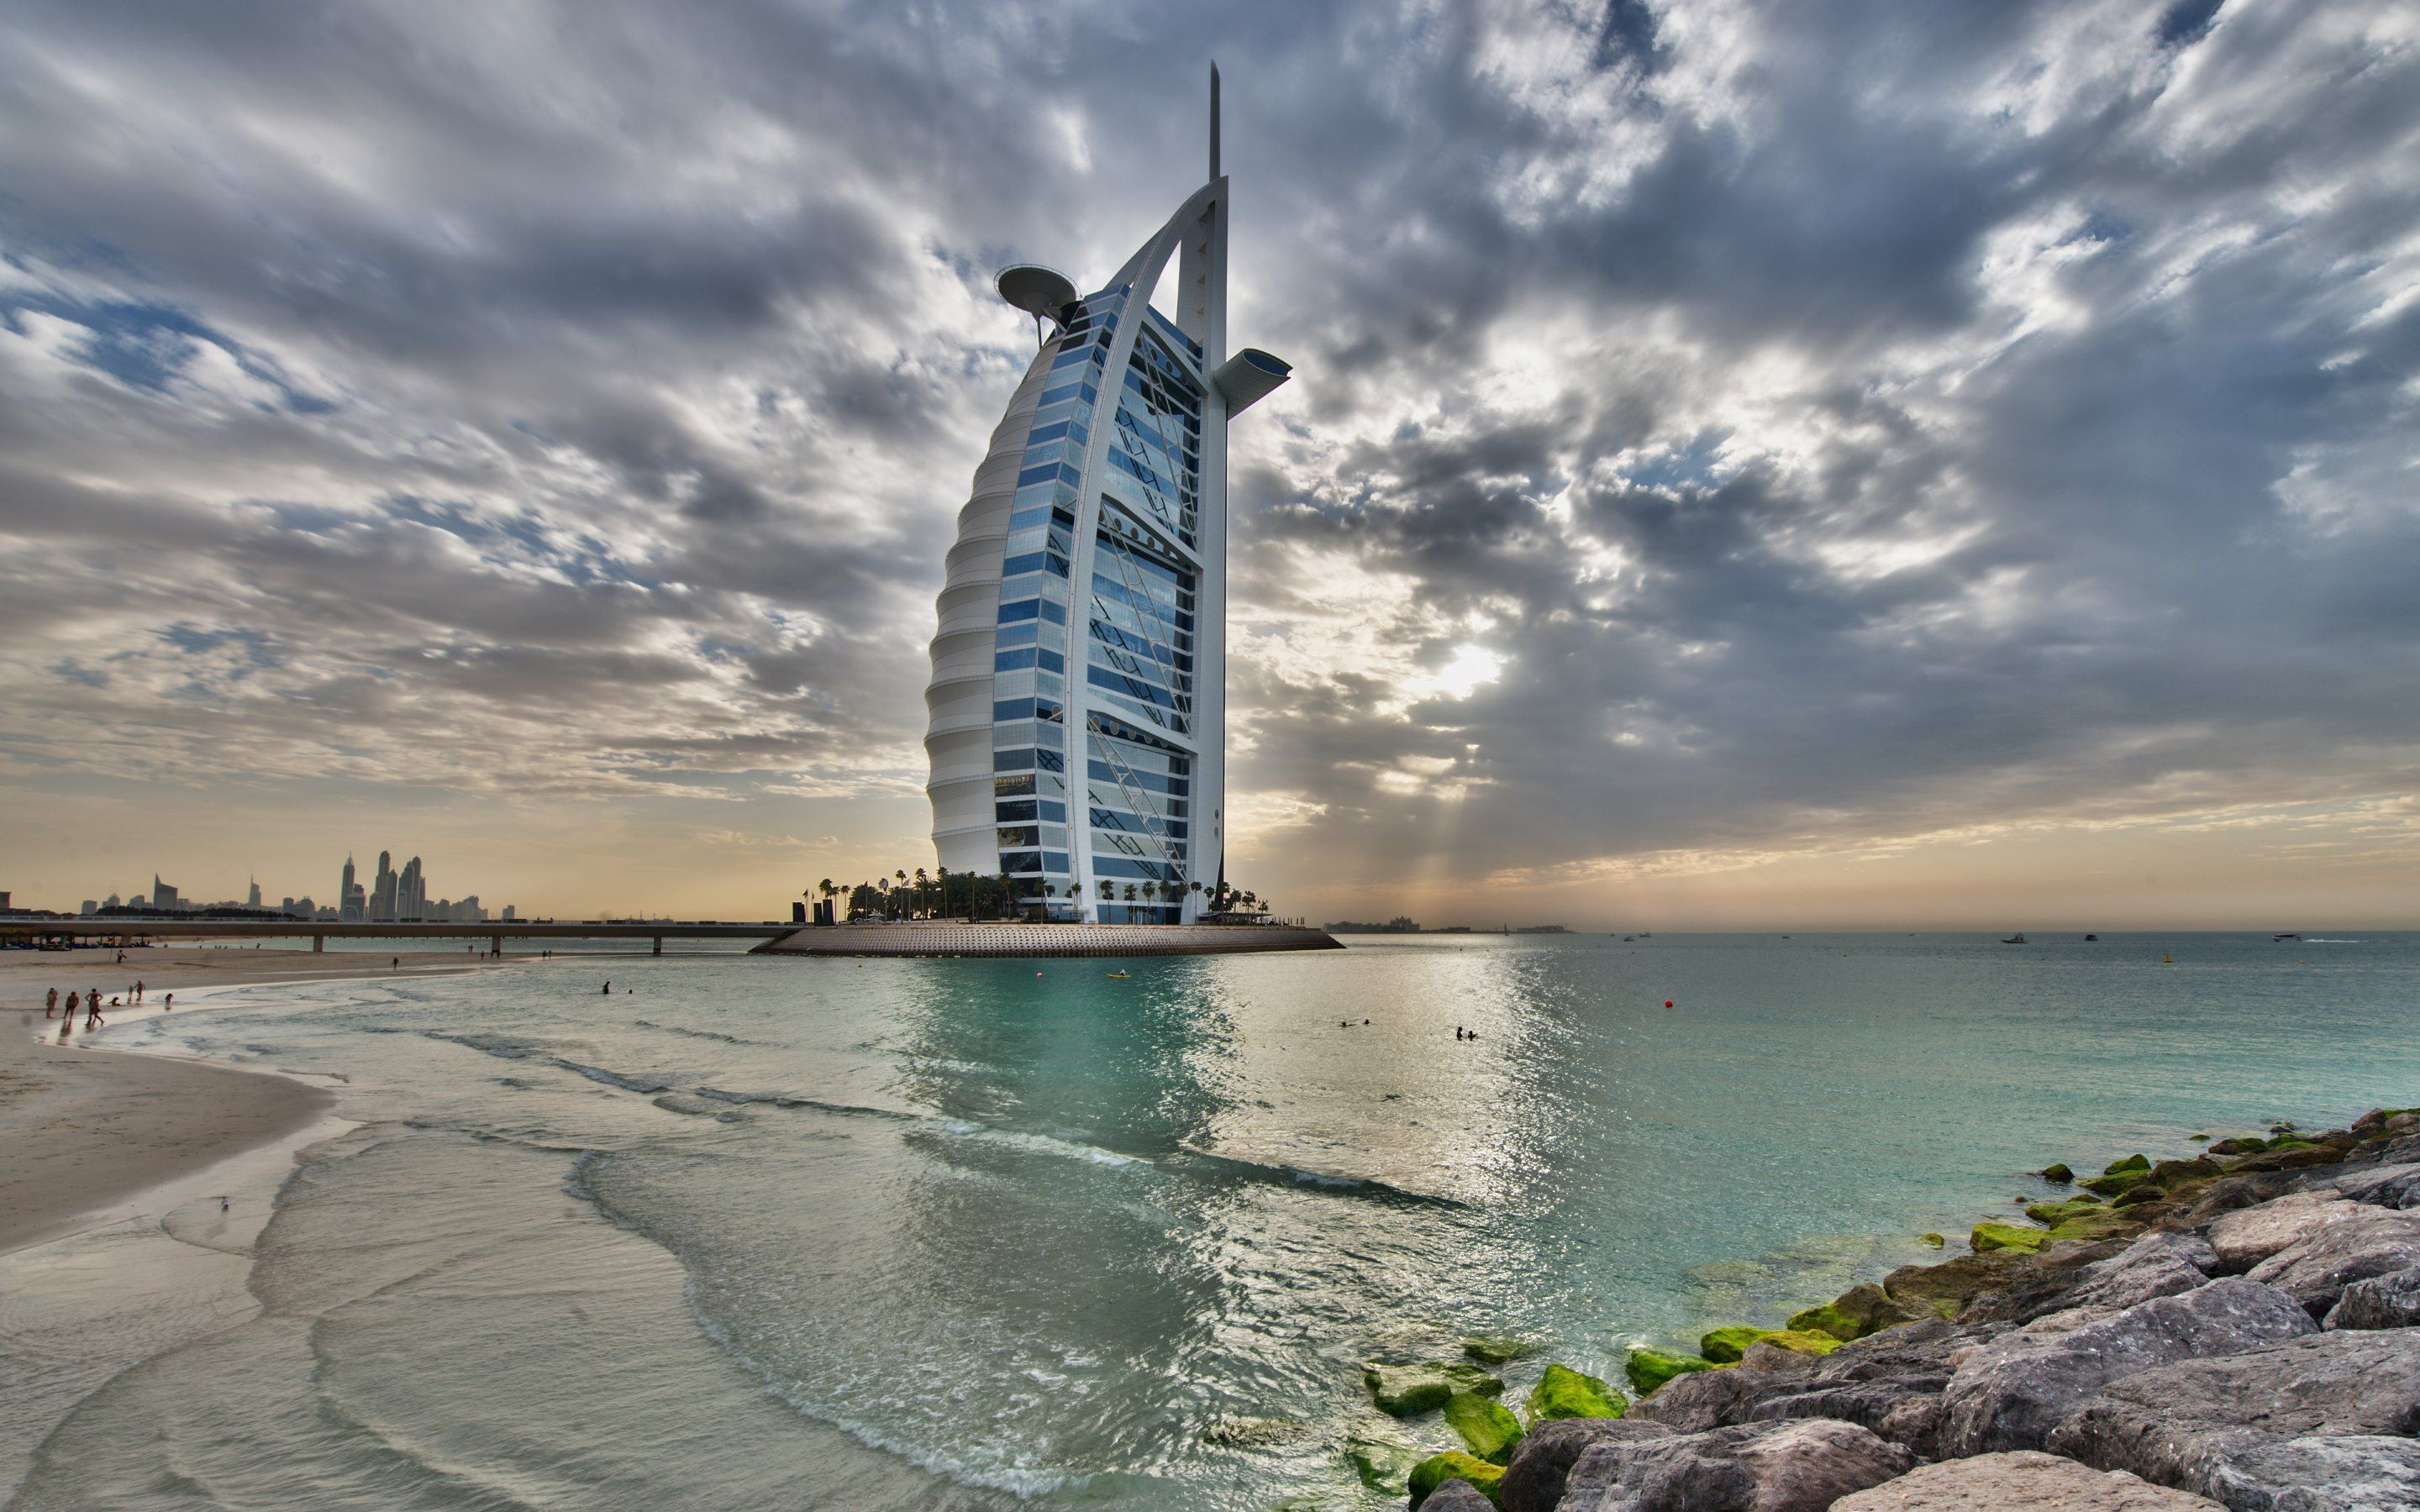 Burj al arab dubai united arab emirates fondo de pantalla - Burj al arab wallpaper iphone ...